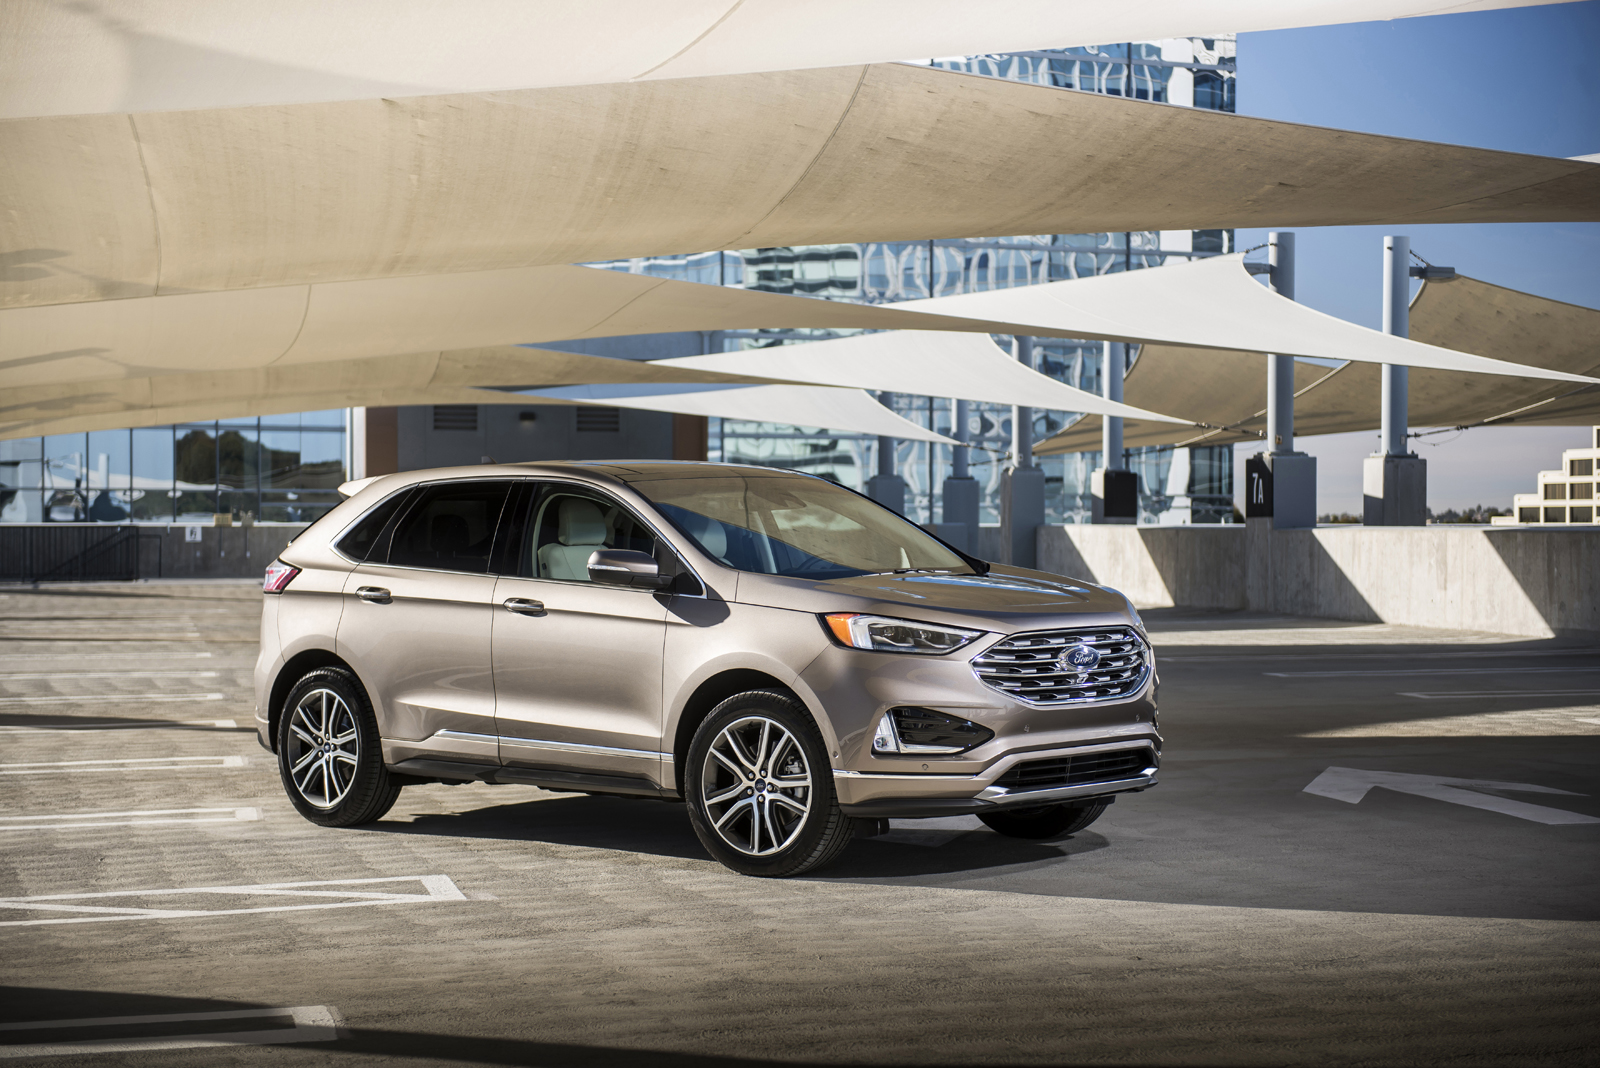 Ford Edge Used >> Ford's SUV Offerings Expand Even More With 2019 Edge Titanium Elite » AutoGuide.com News